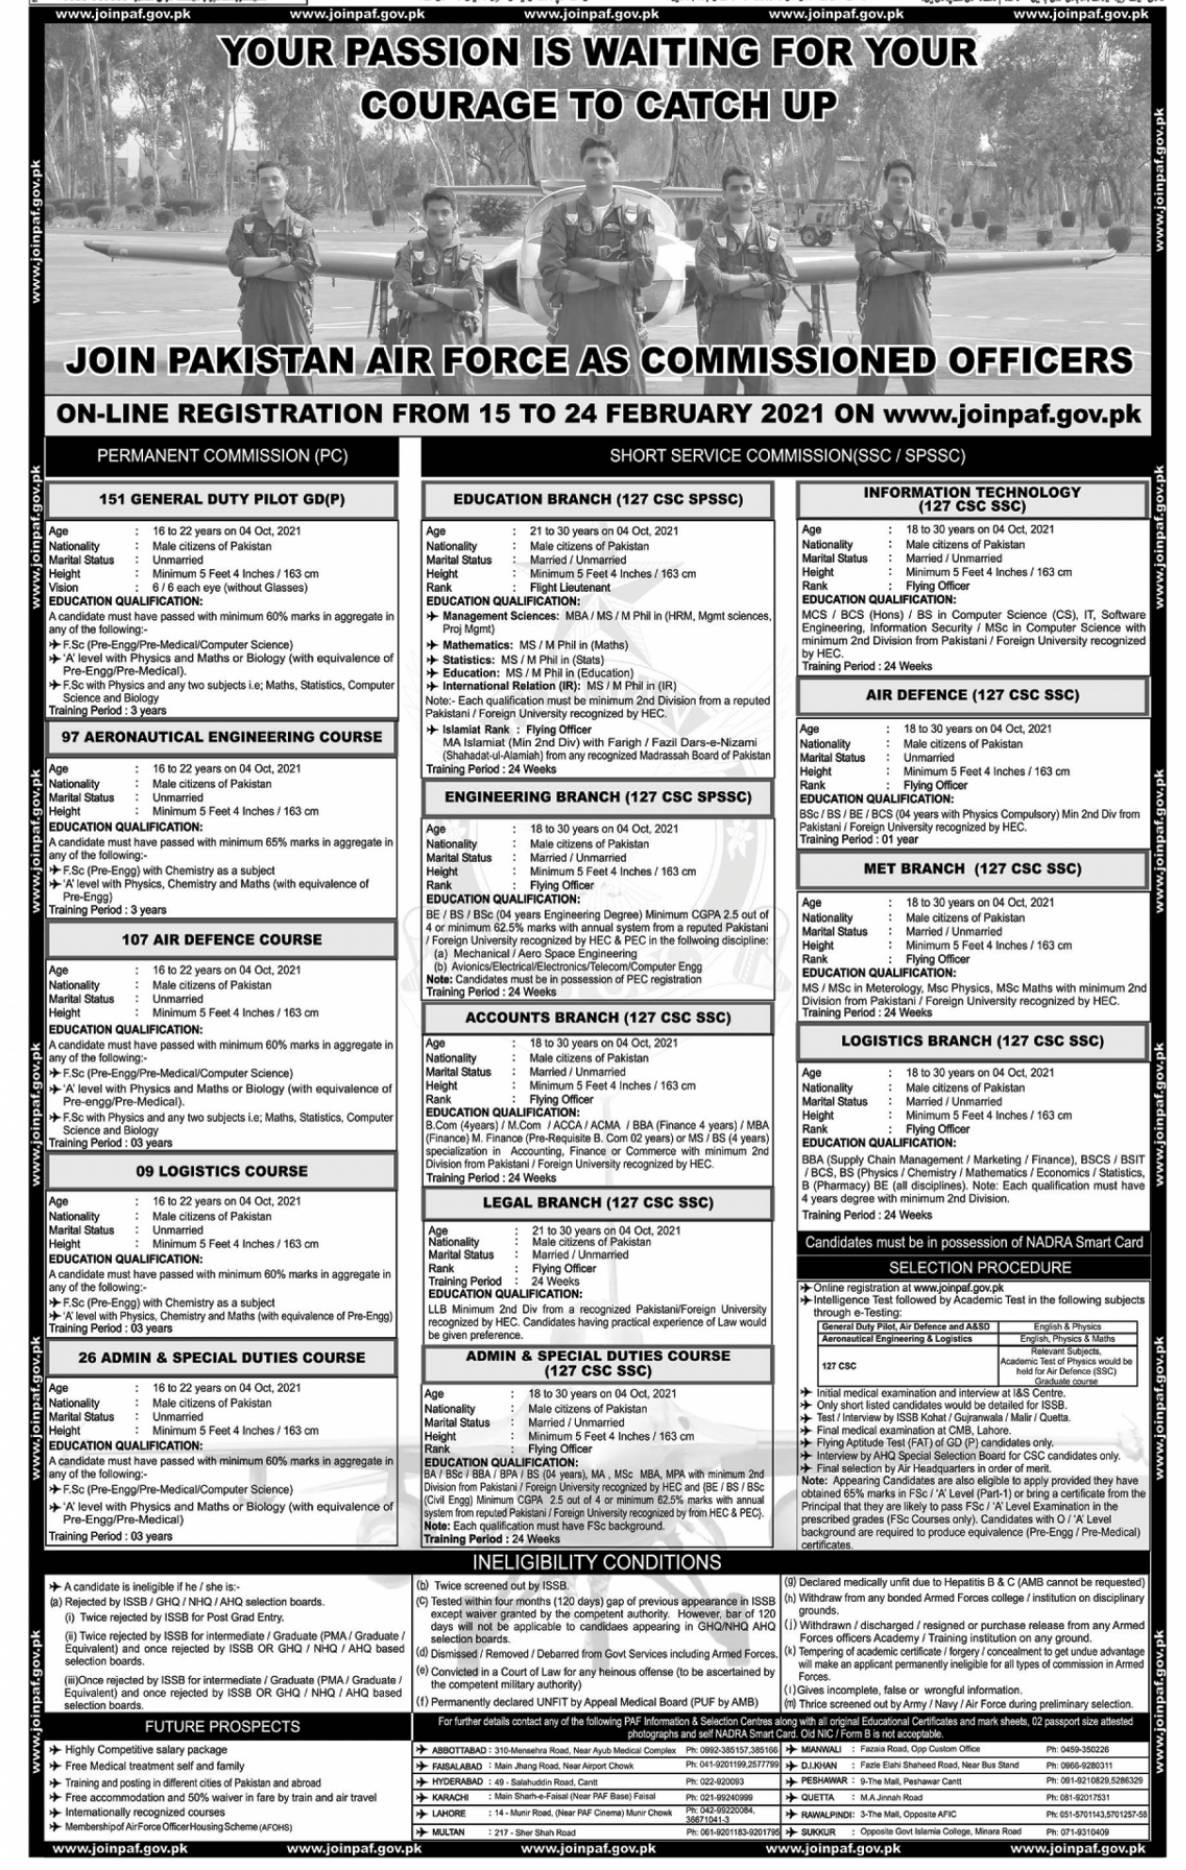 Air Force Jobs - Pak Air Force Jobs 2021 - AirForce Vacancies - Air Force New Jobs - Air Force Latest Jobs - Best Air Force Jobs - Air Force Officer Jobs - PAF Online Registration - www.joinpaf.gov.pk